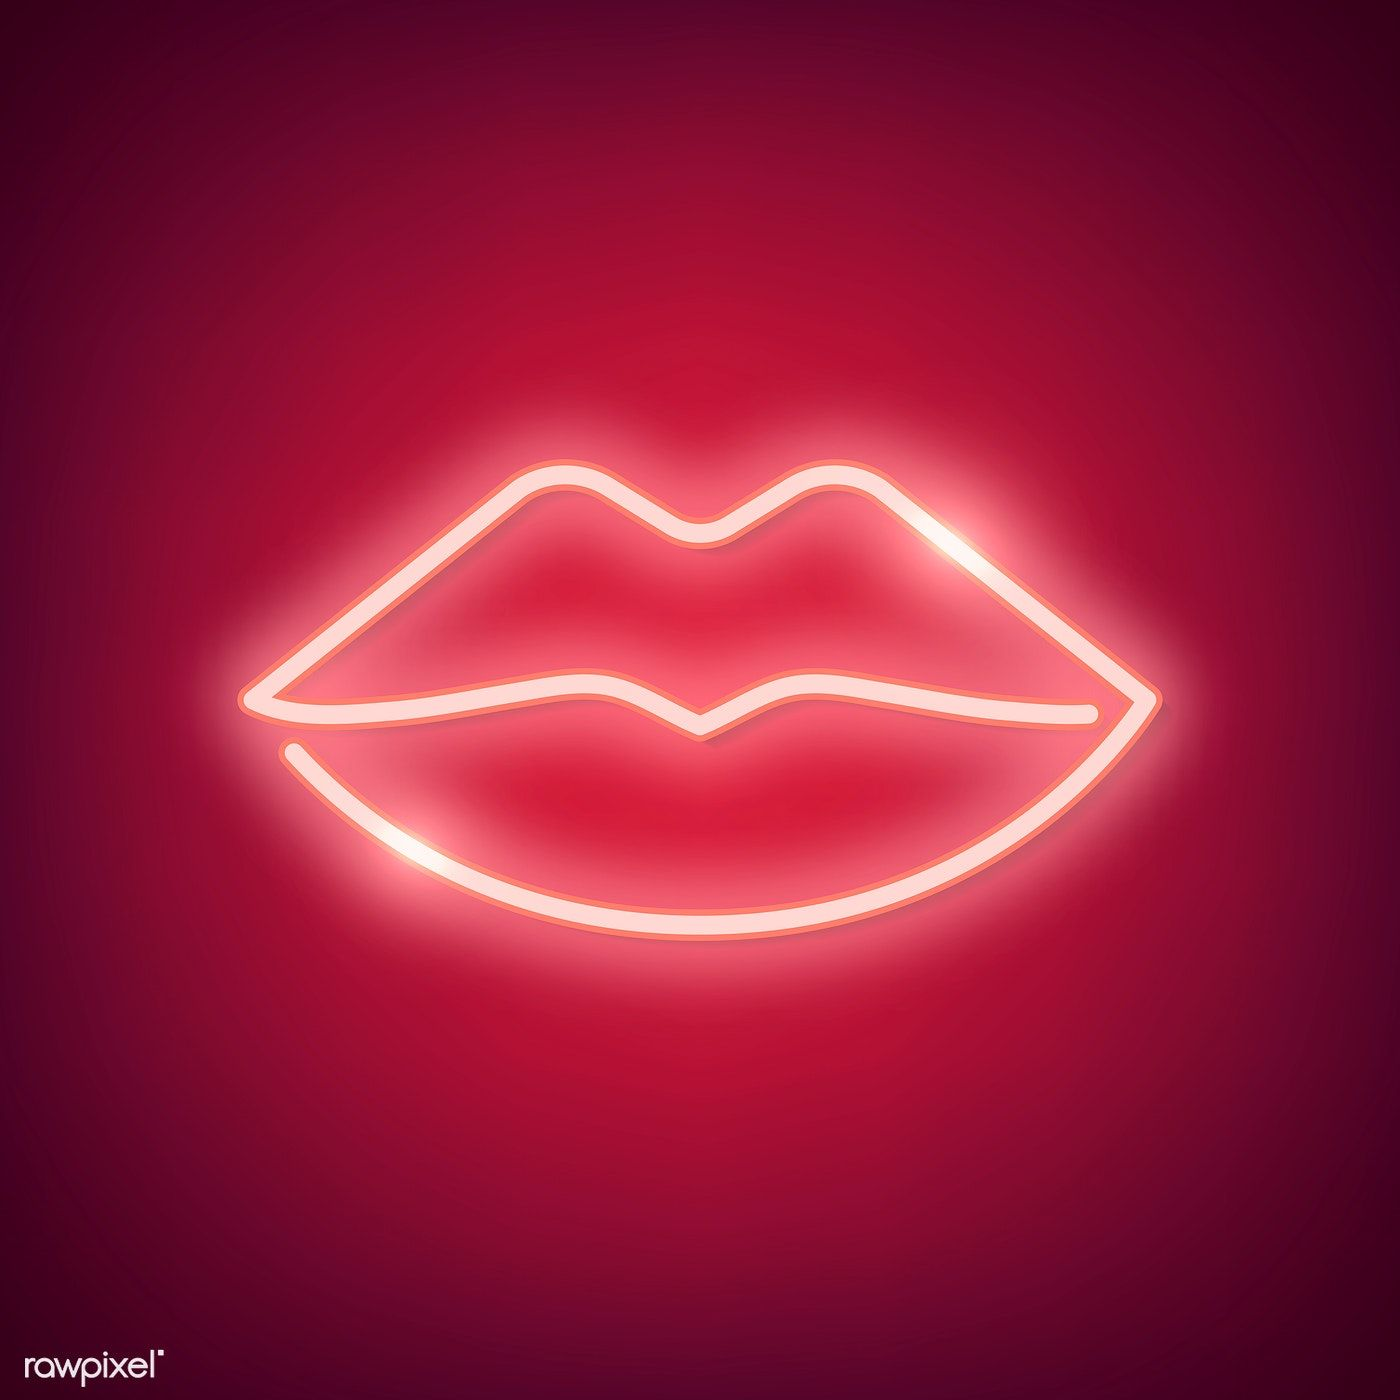 Neon light kiss sign on red background free image by